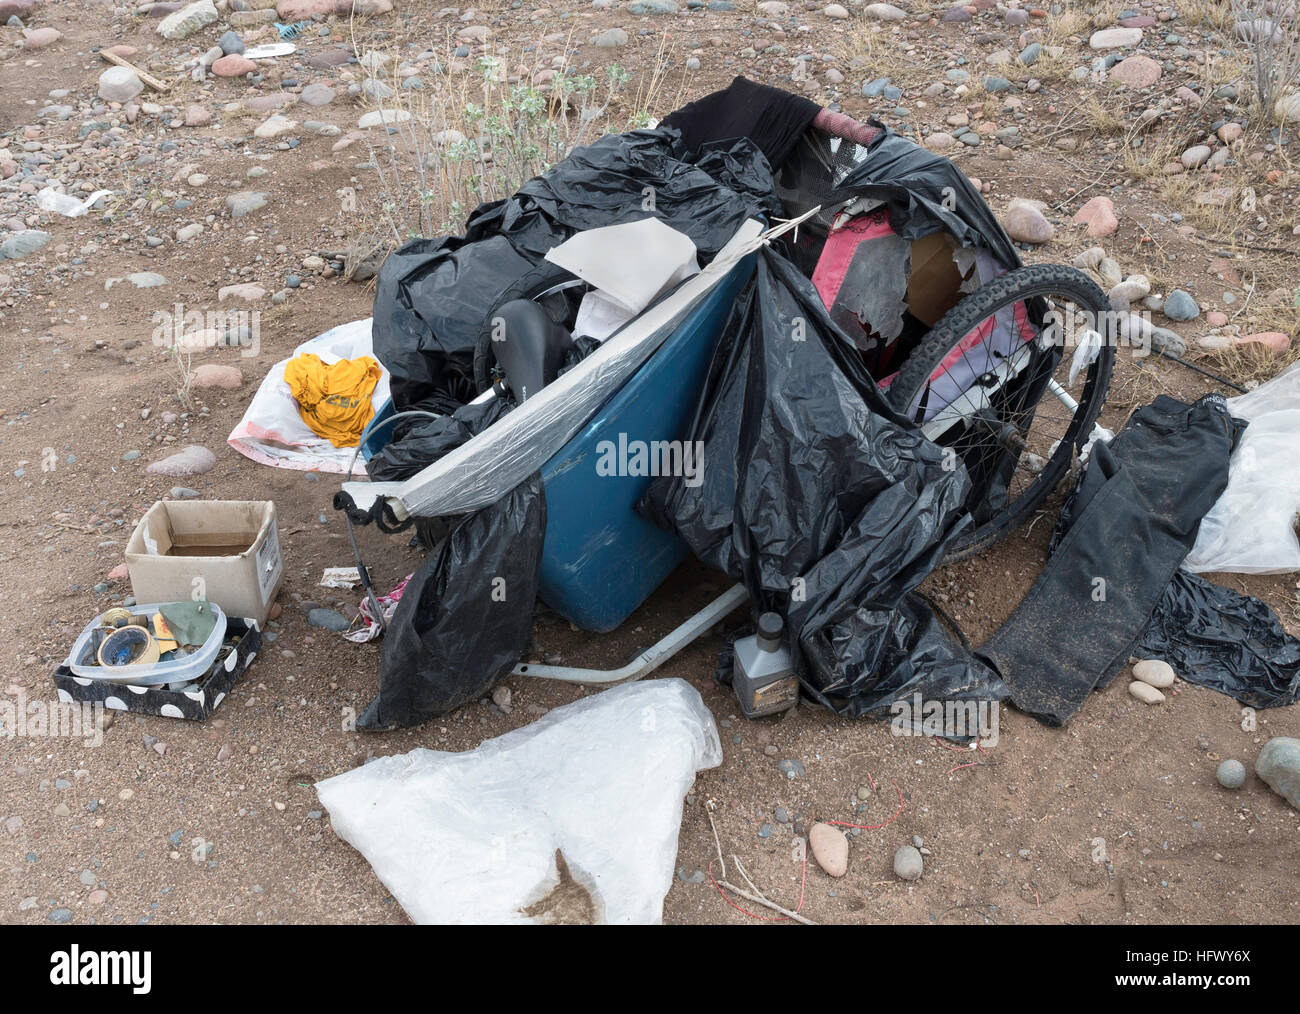 homeless person's possessions - Stock Image